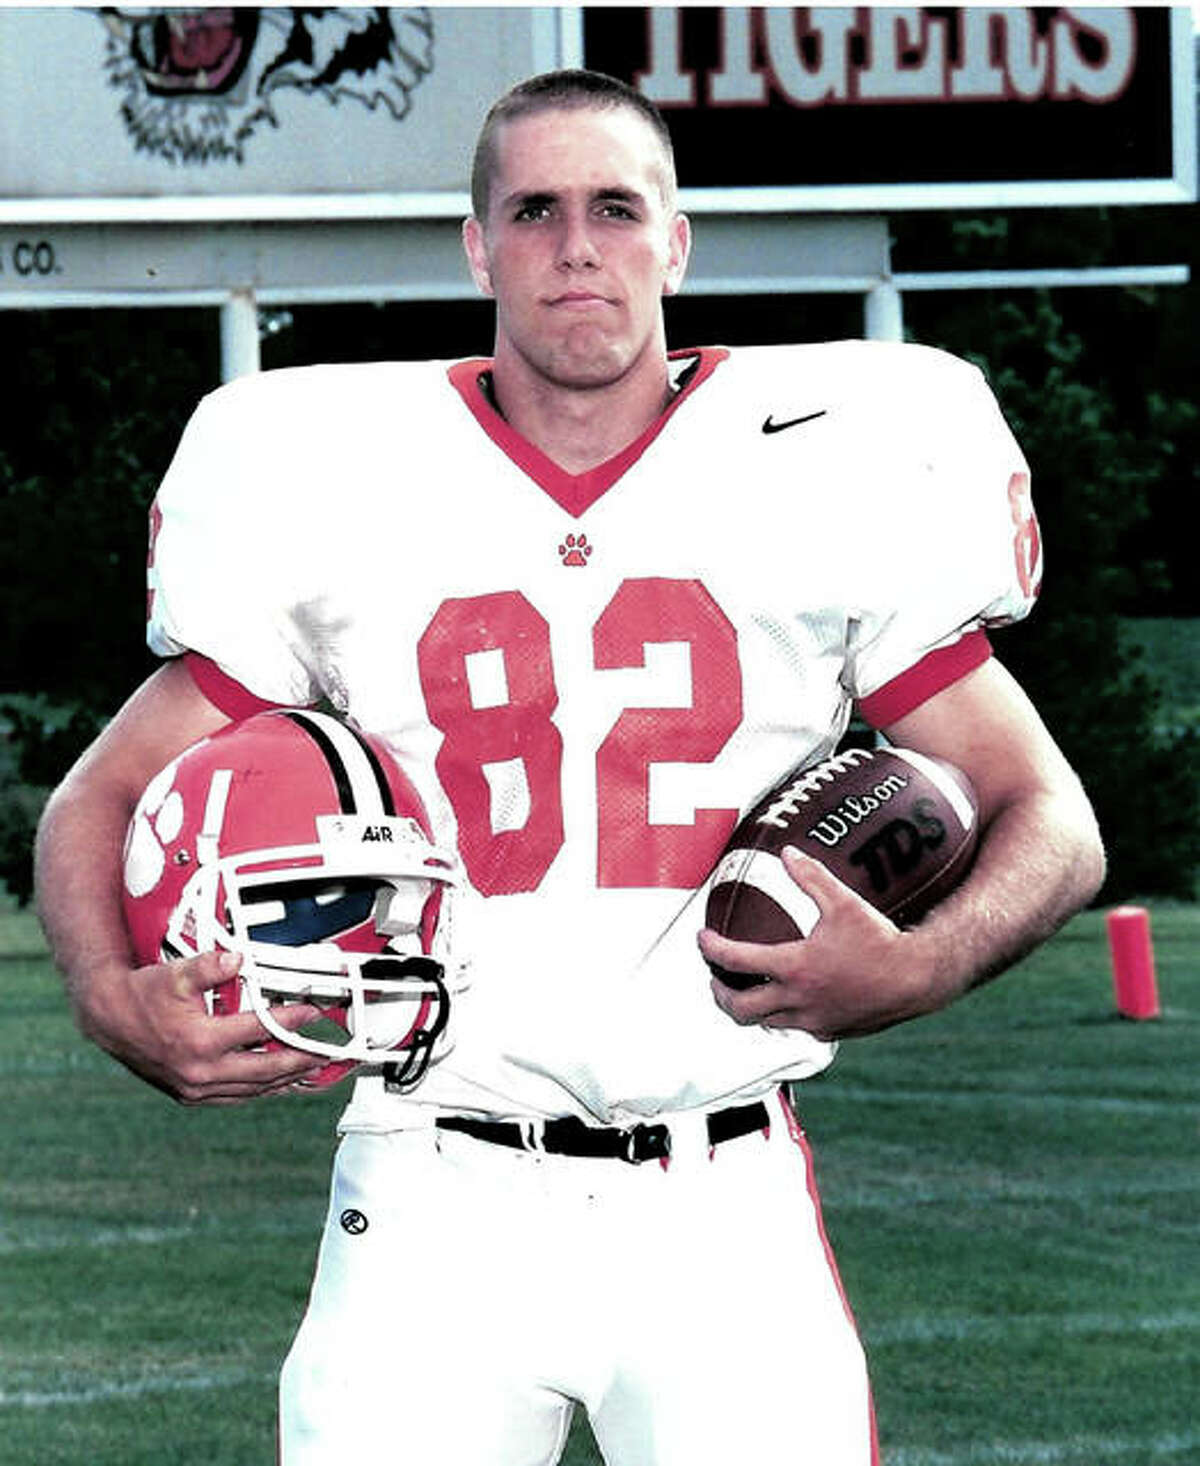 Kevin Maliszewski, a 2002 Edwardsville graduate, was a tight end and defensive end for the EHS football team.